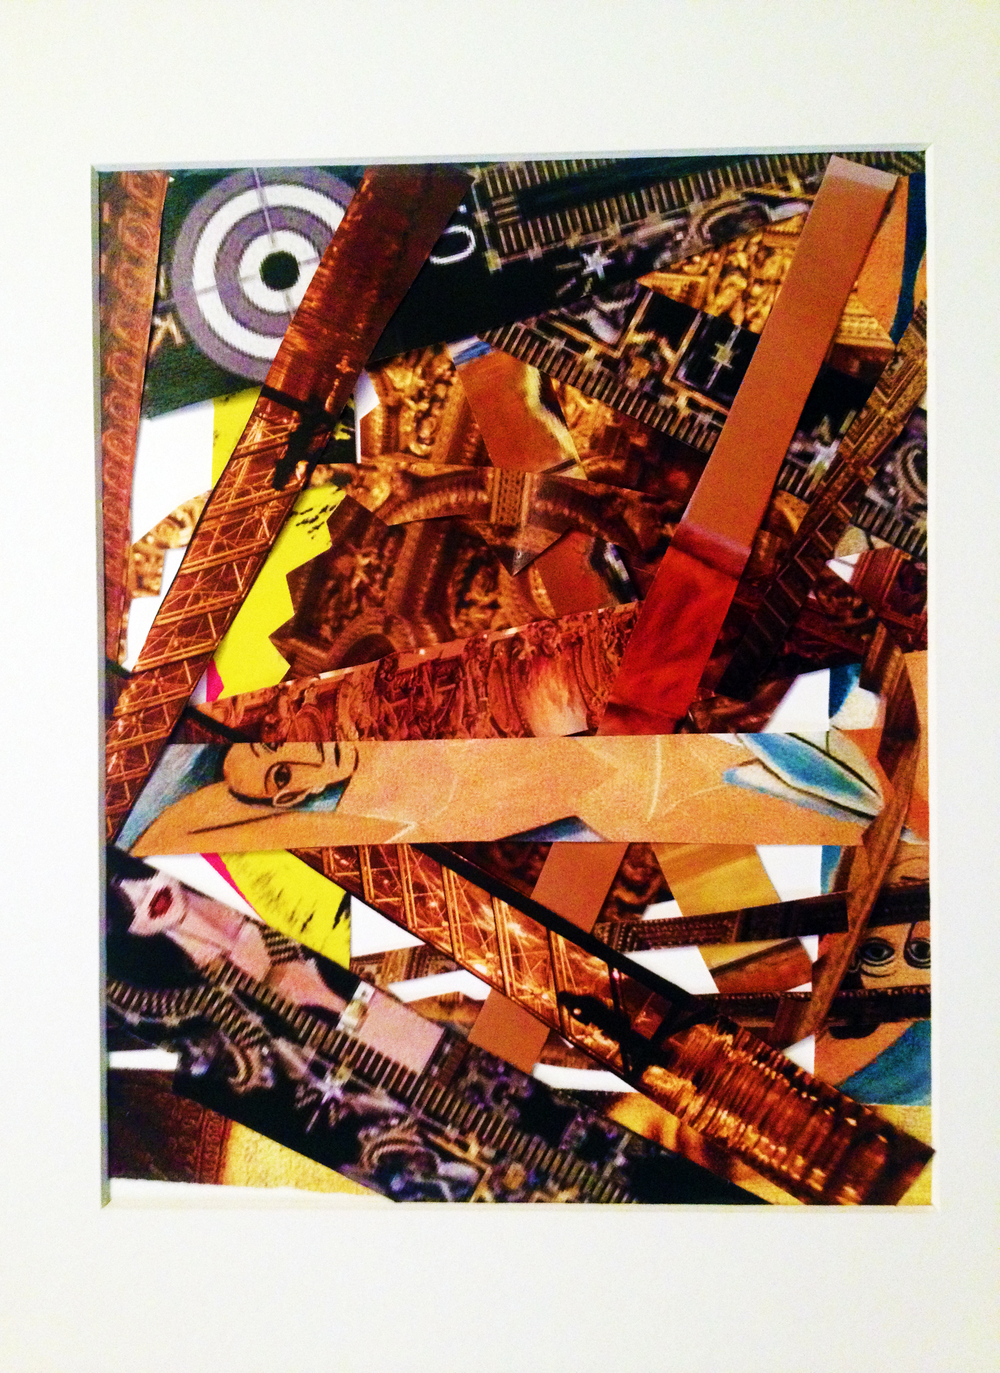 Title - Everything That Glitters Aint' Gold - This piece is about the saturation of materialism and sexuality in society.